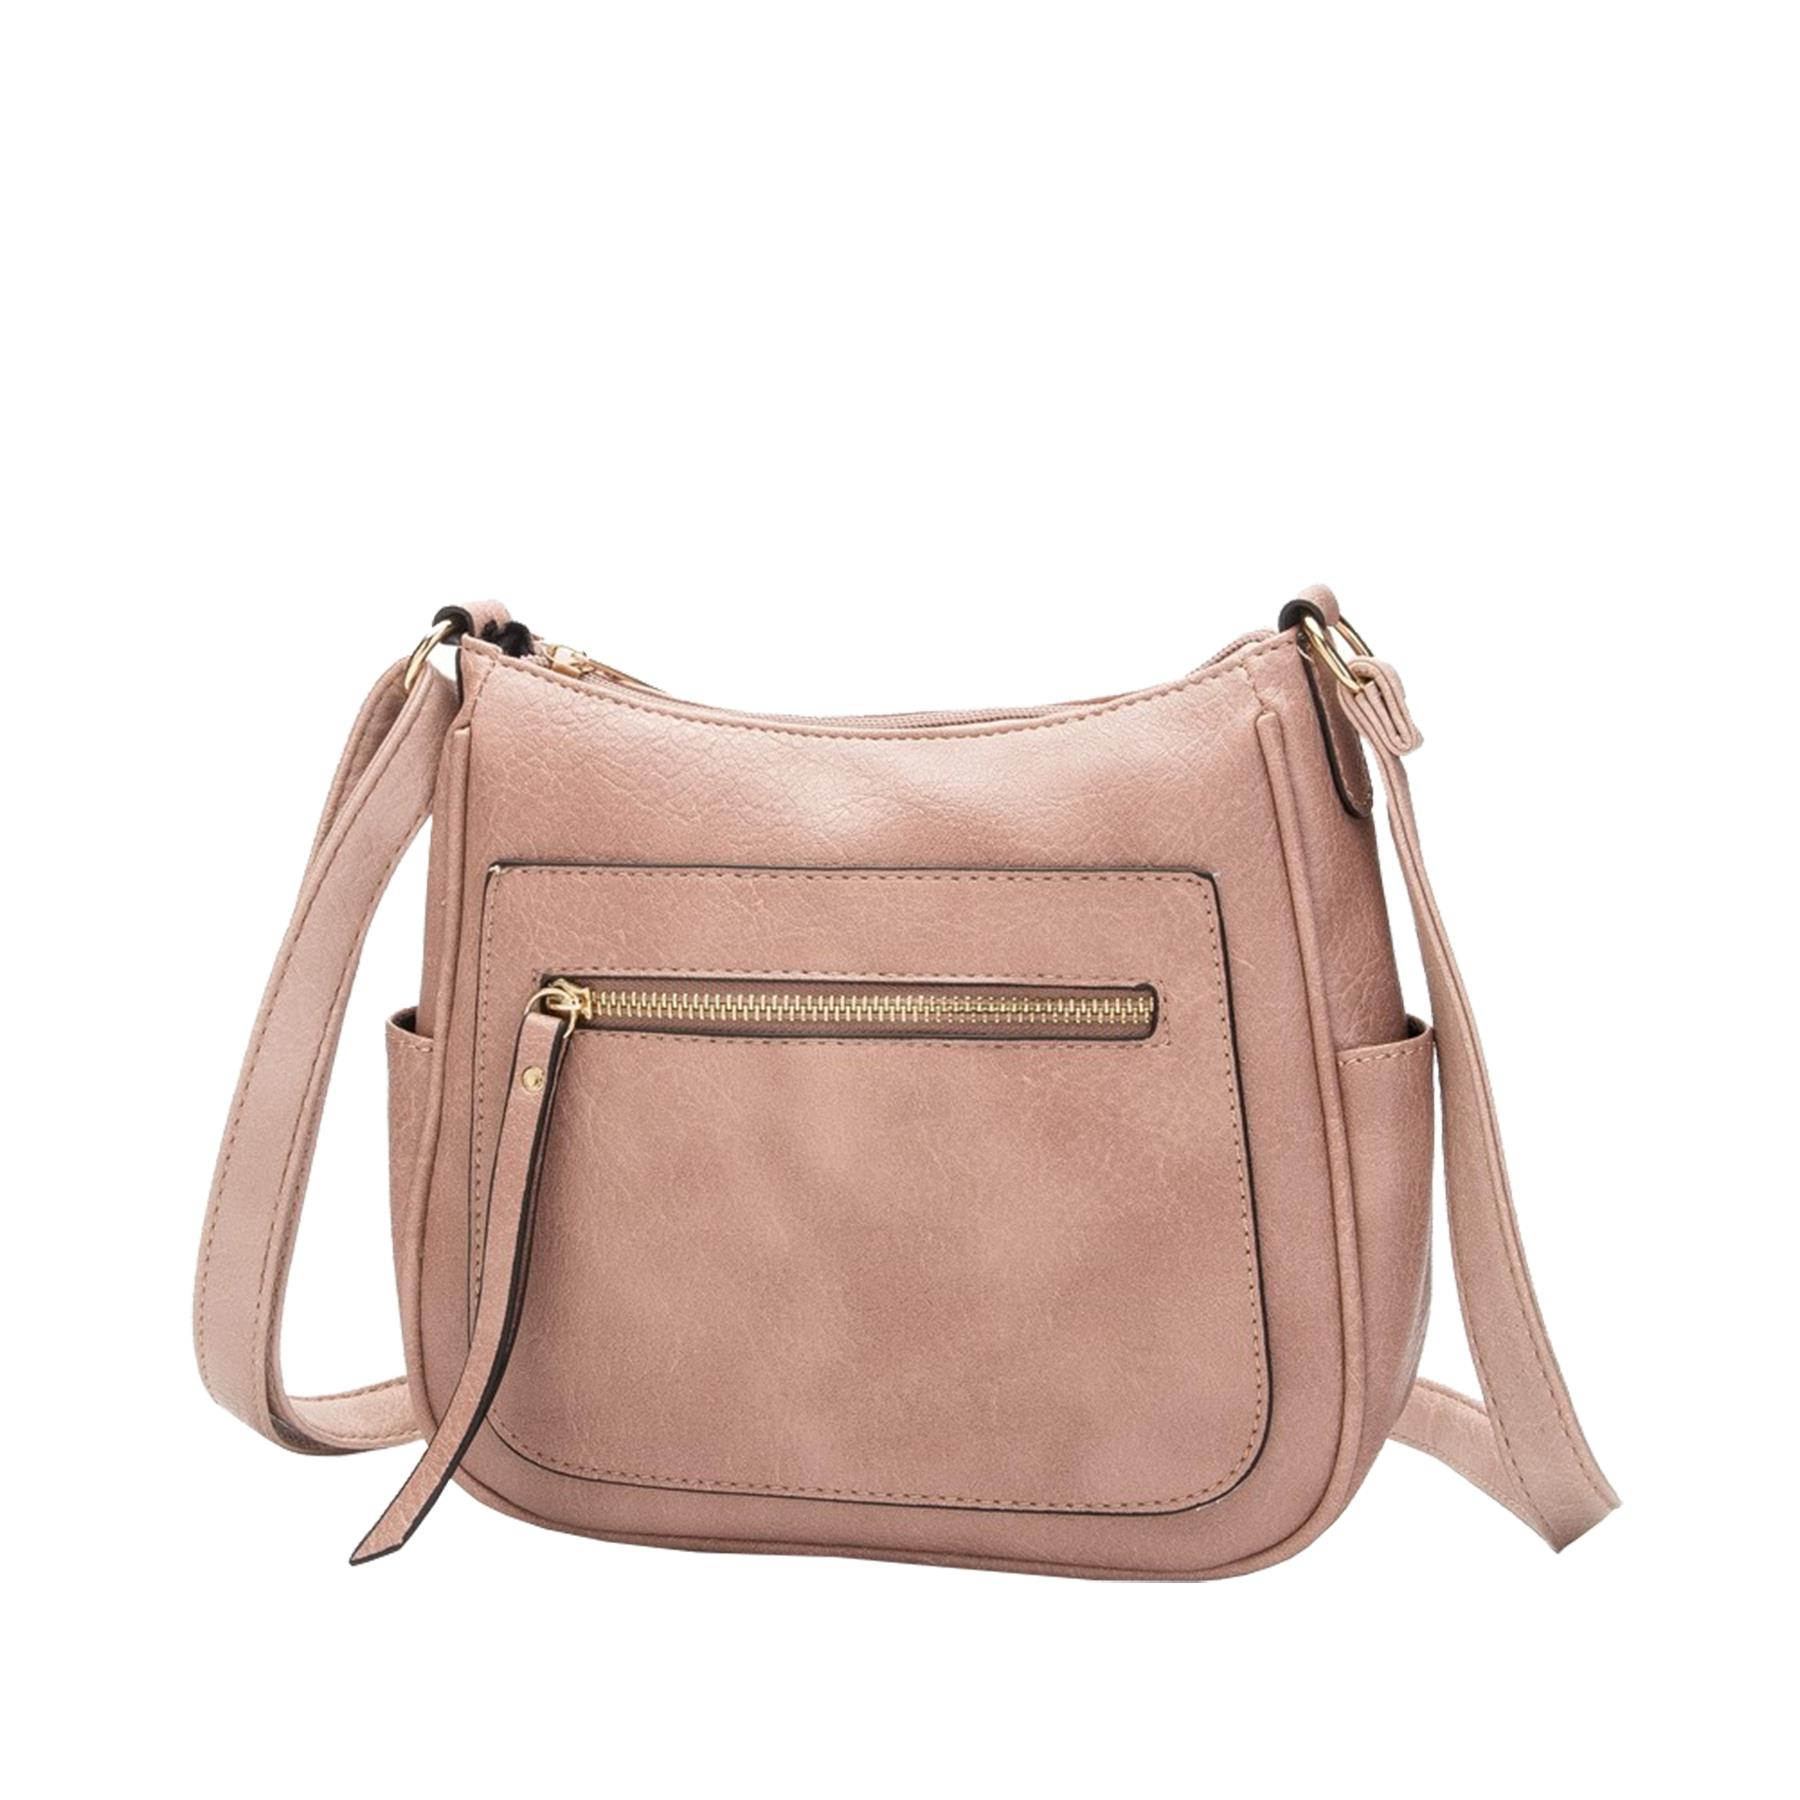 New-Women-s-Front-Zip-Faux-Leather-Basic-Small-Crossbody-Messenger-Bag thumbnail 6